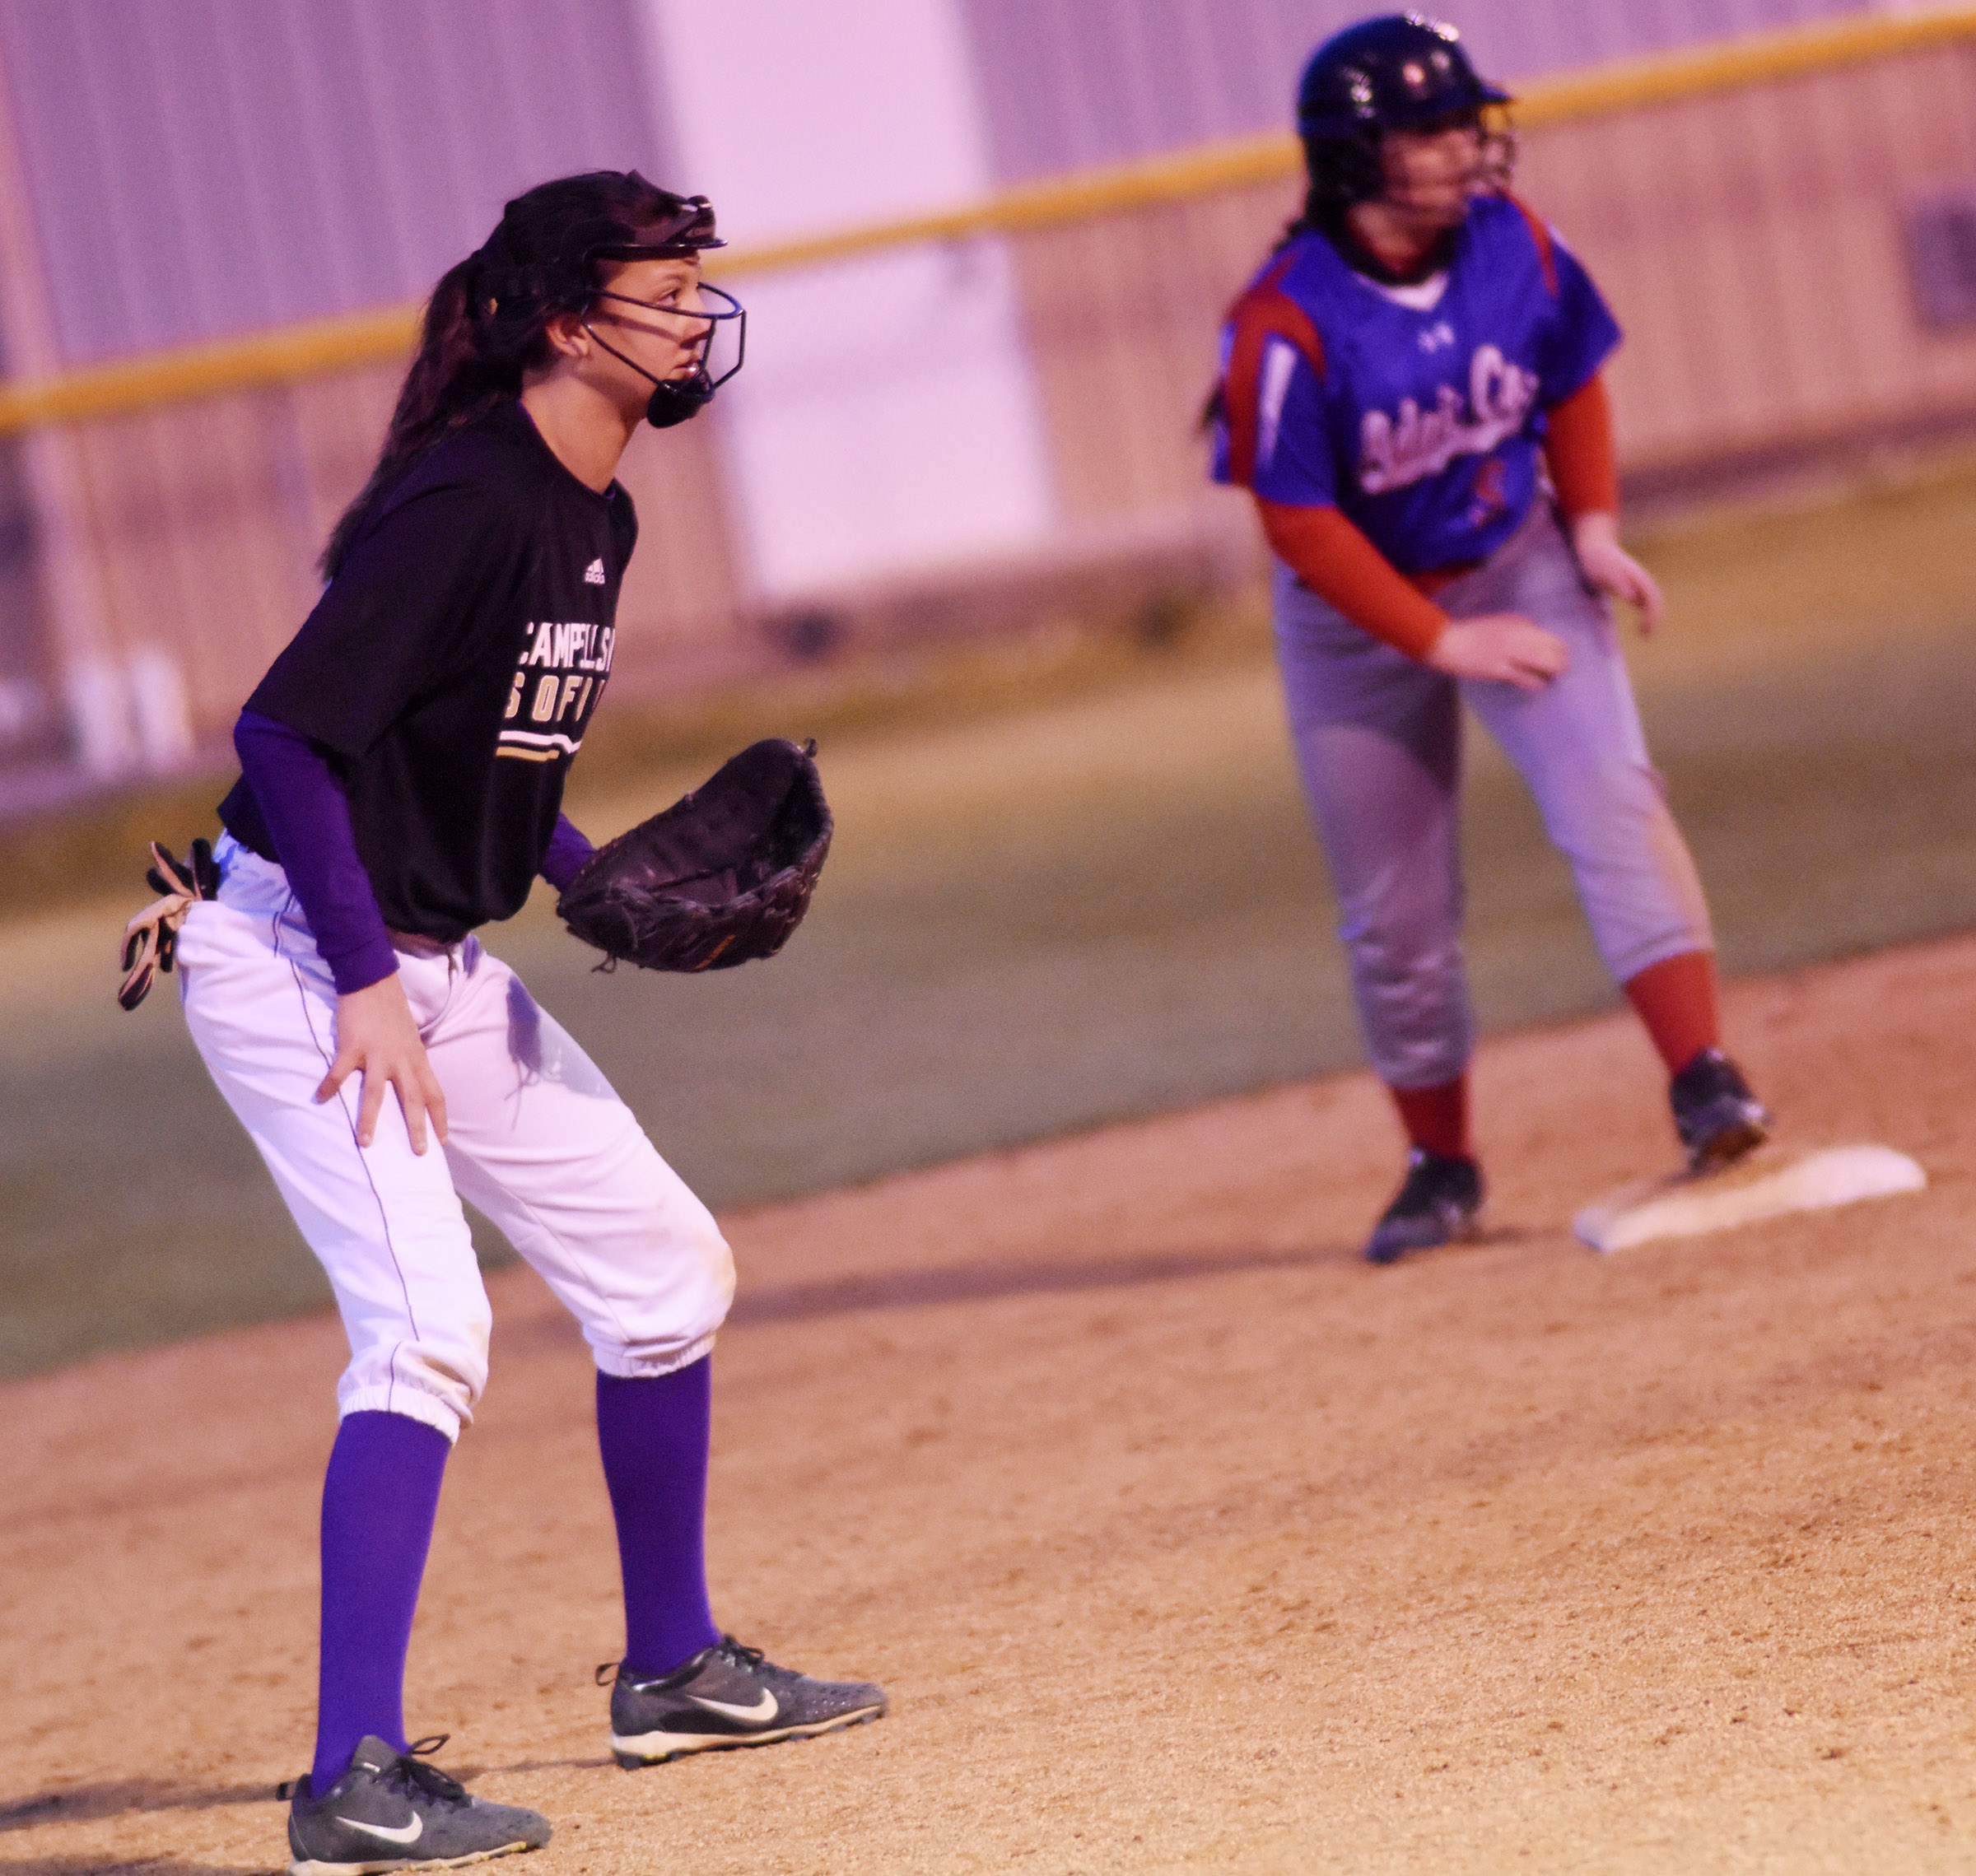 Campbellsville Middle School seventh-grader Bri Hayes watches the runner at second.